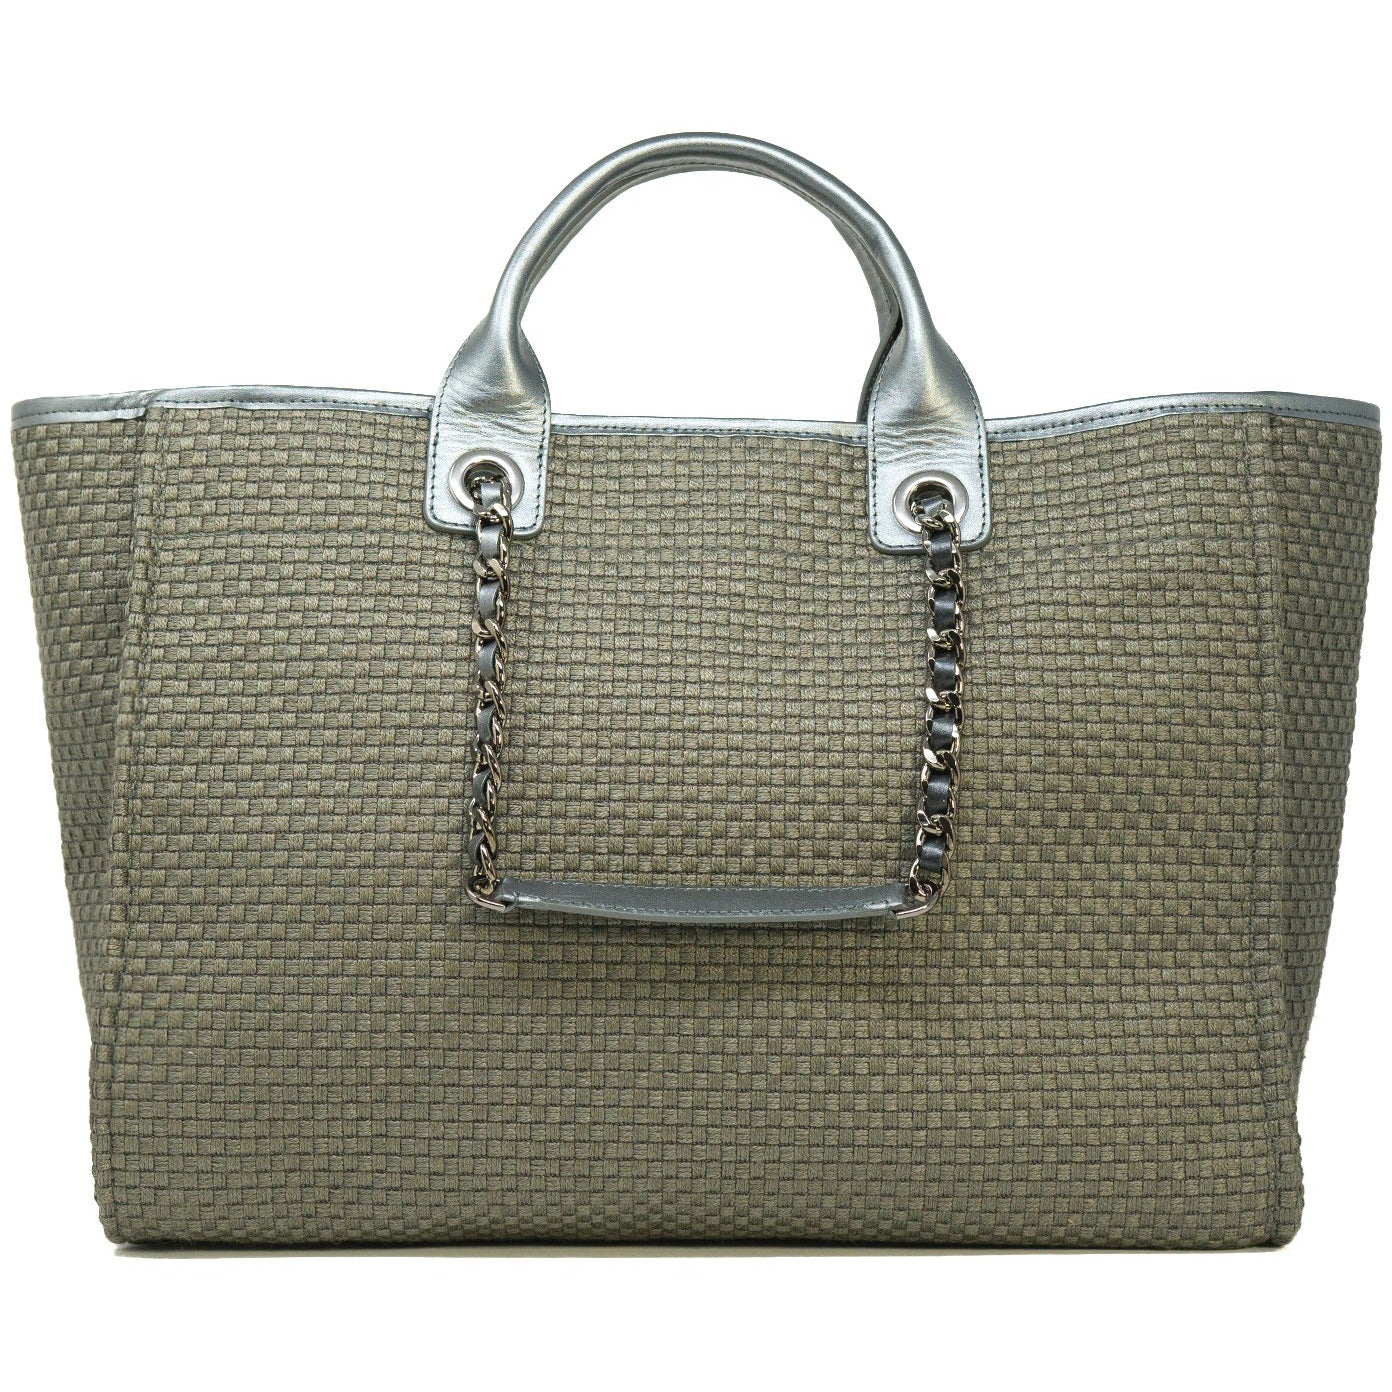 The Hamptons Large Shopping Bag in Pearl Grey